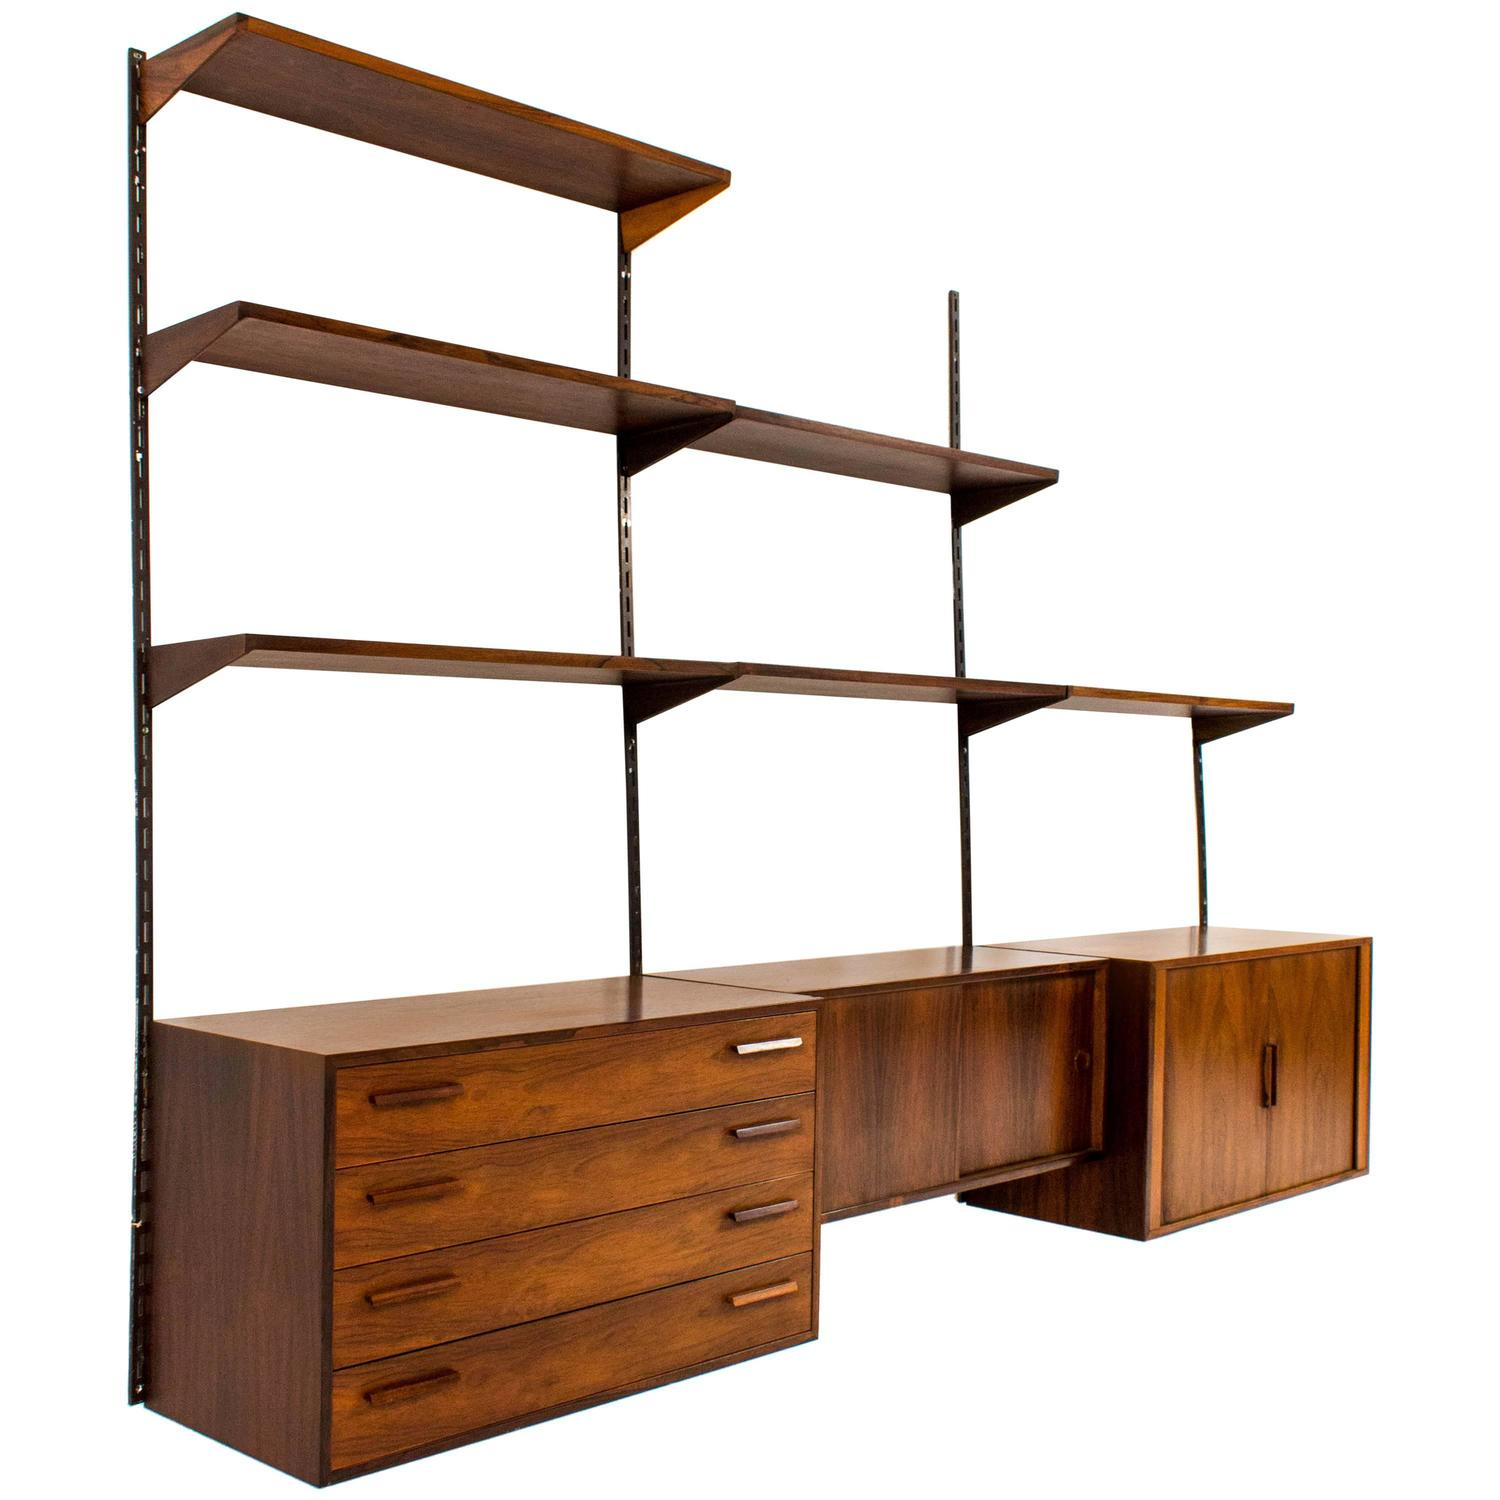 Create more space with Wall shelving units darbylanefurniture